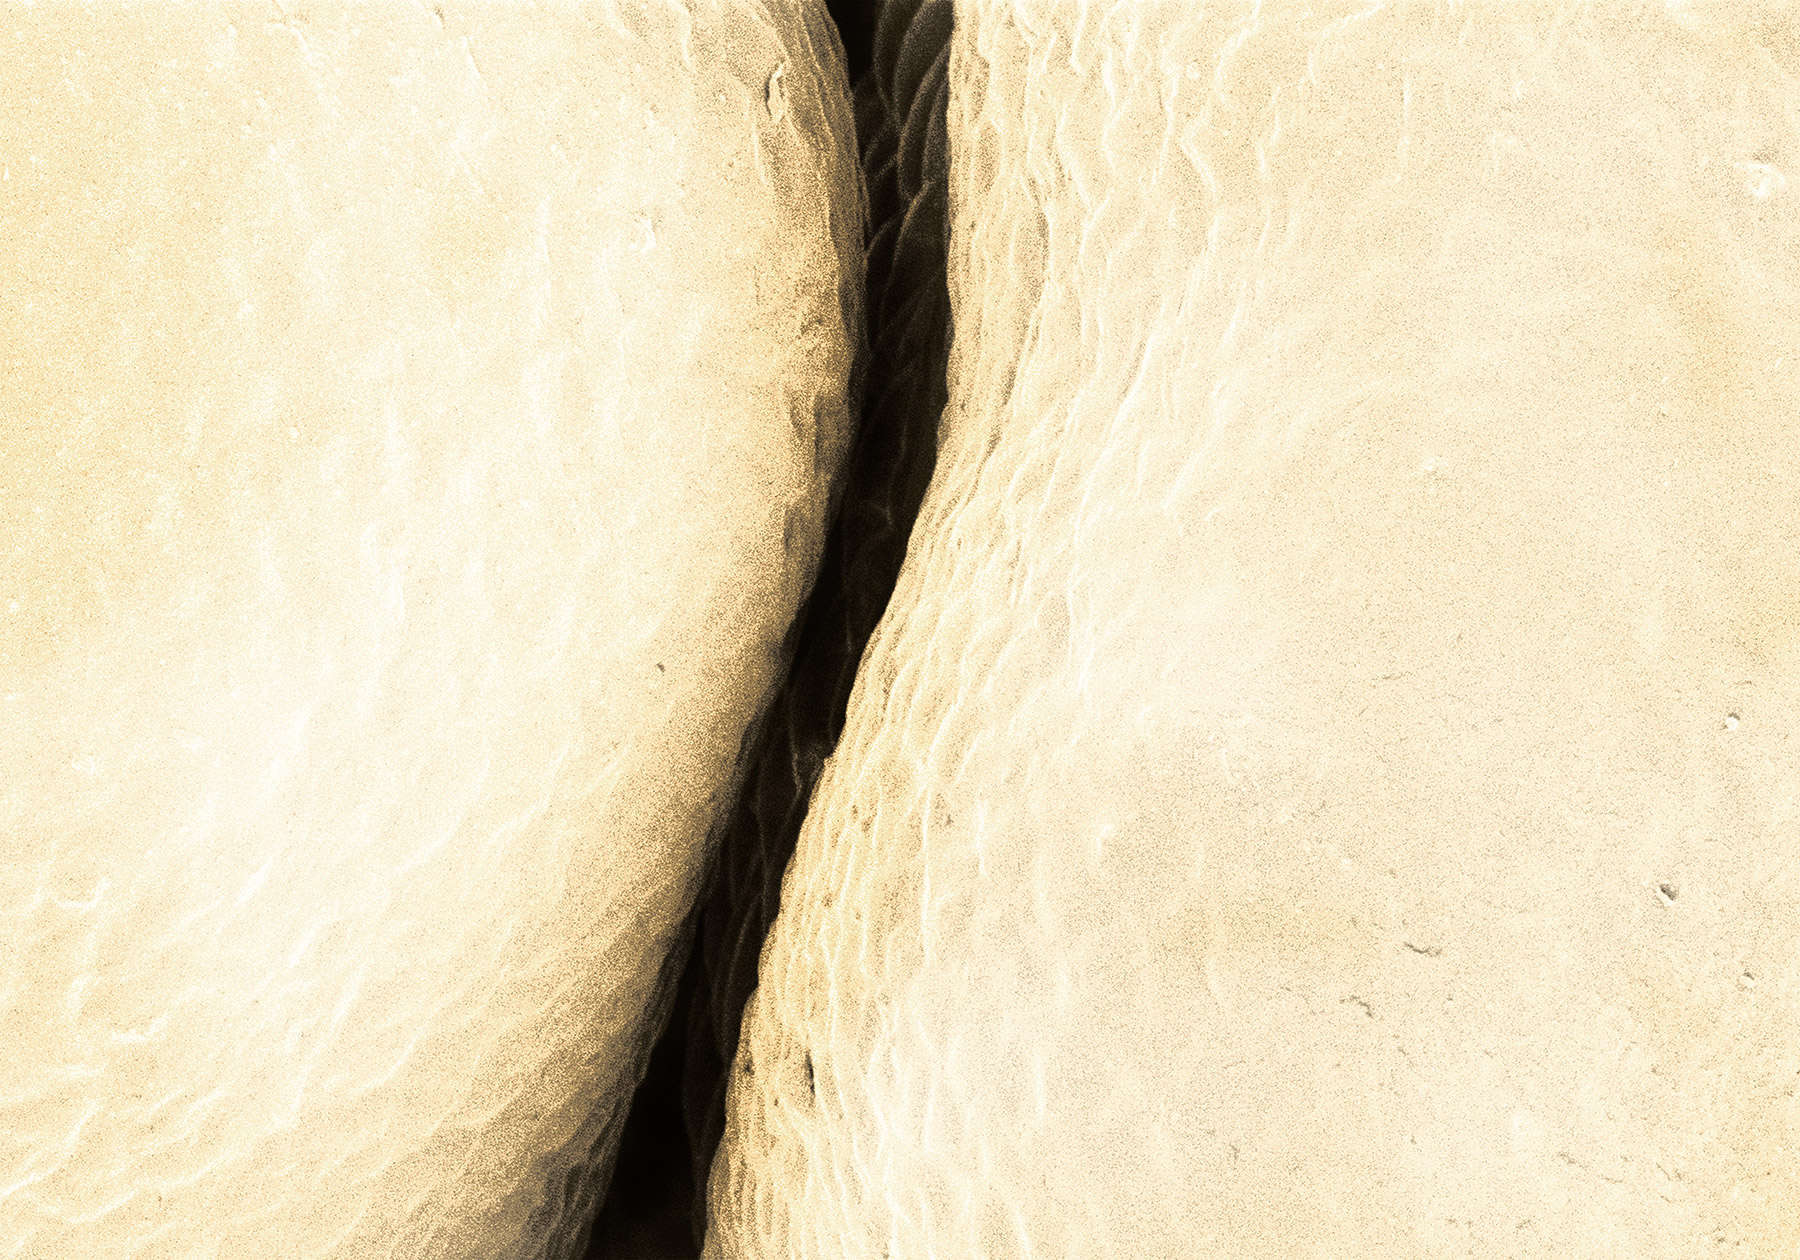 terra cibus no.11: cauliflower 2  850x magnification